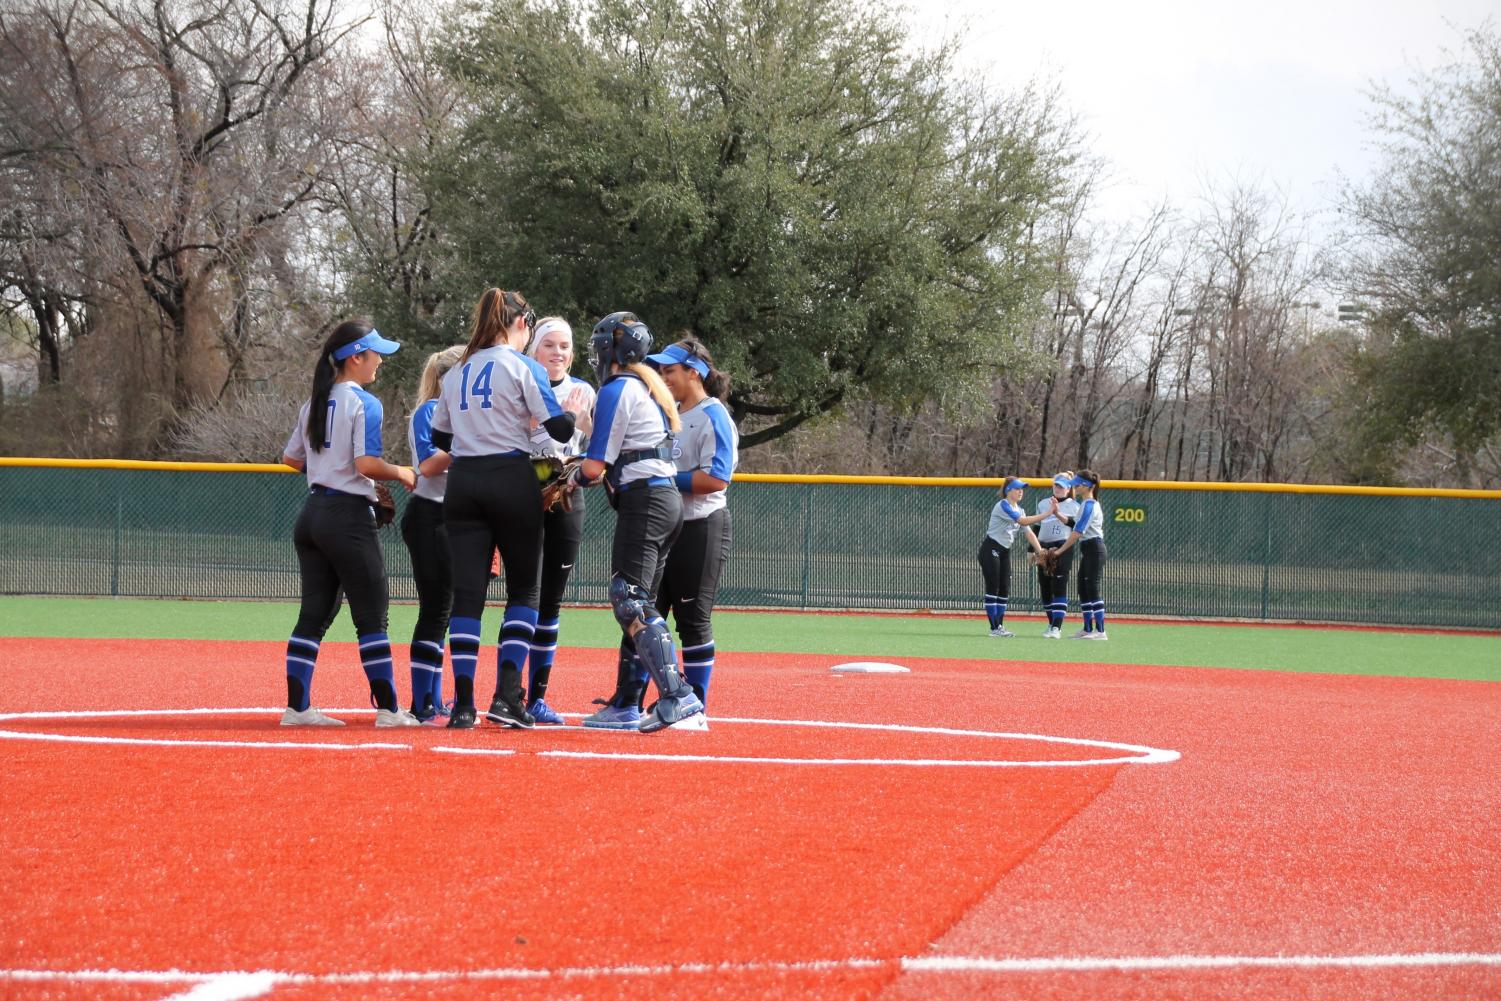 The softball team huddles around the pitcher's mound. They were discussing a strategy prior to the start of the inning.